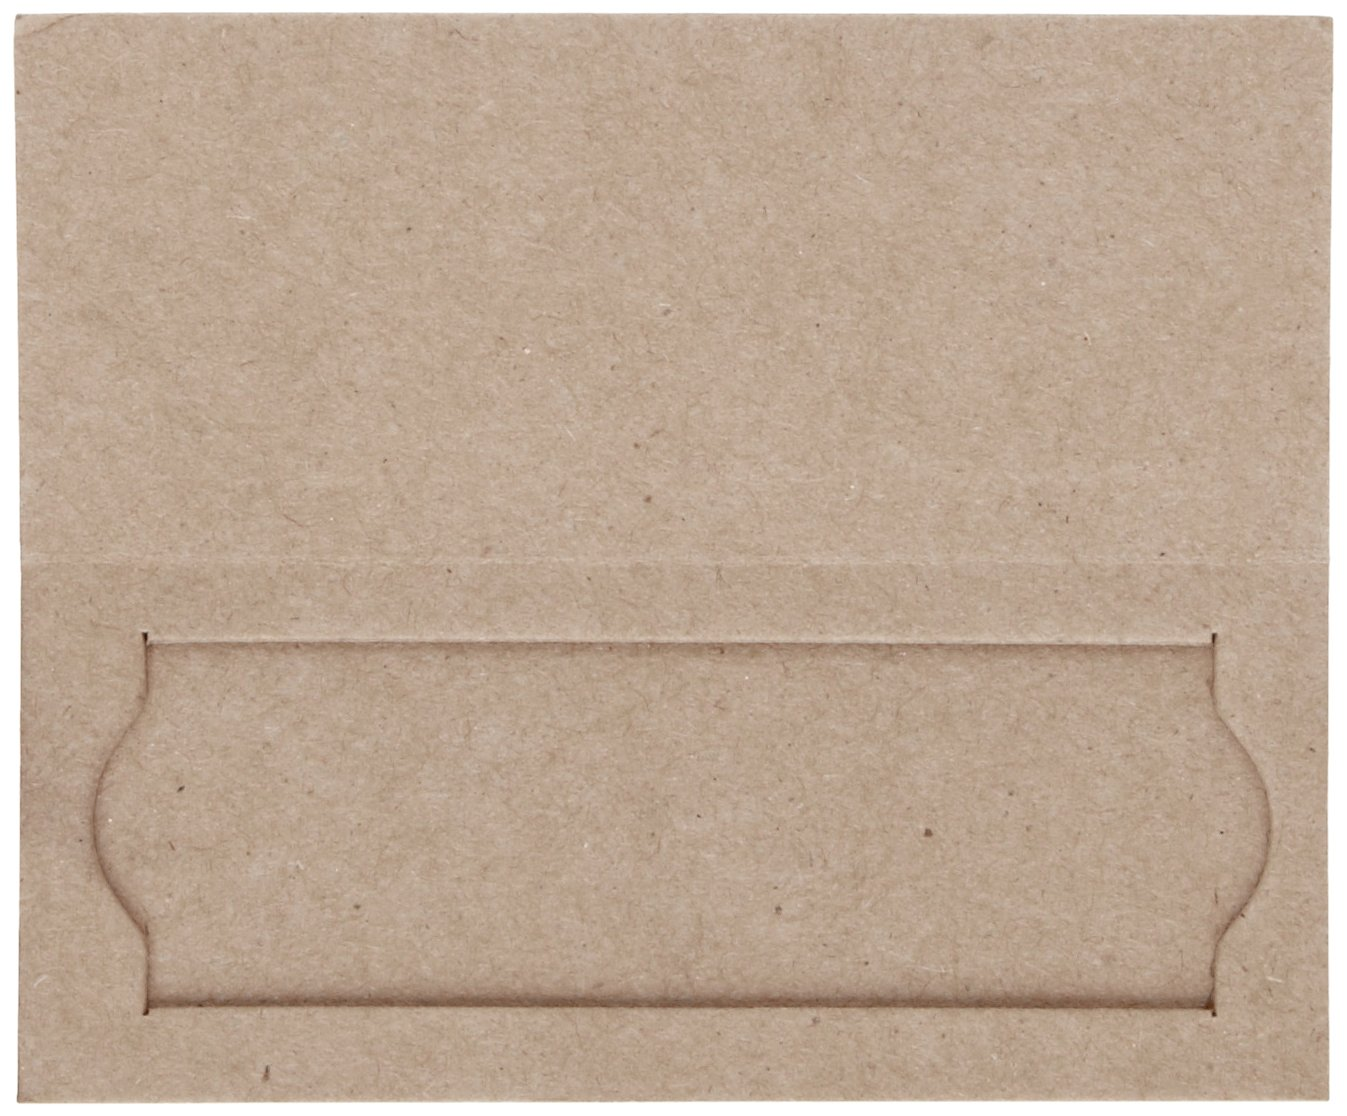 Pack of 25 Heathrow Scientific HD9903 Heavy Cardboard Slide Mailer with Thumb Groove HS9903 1 Place 95mm Length x 40mm Width x 5mm Height